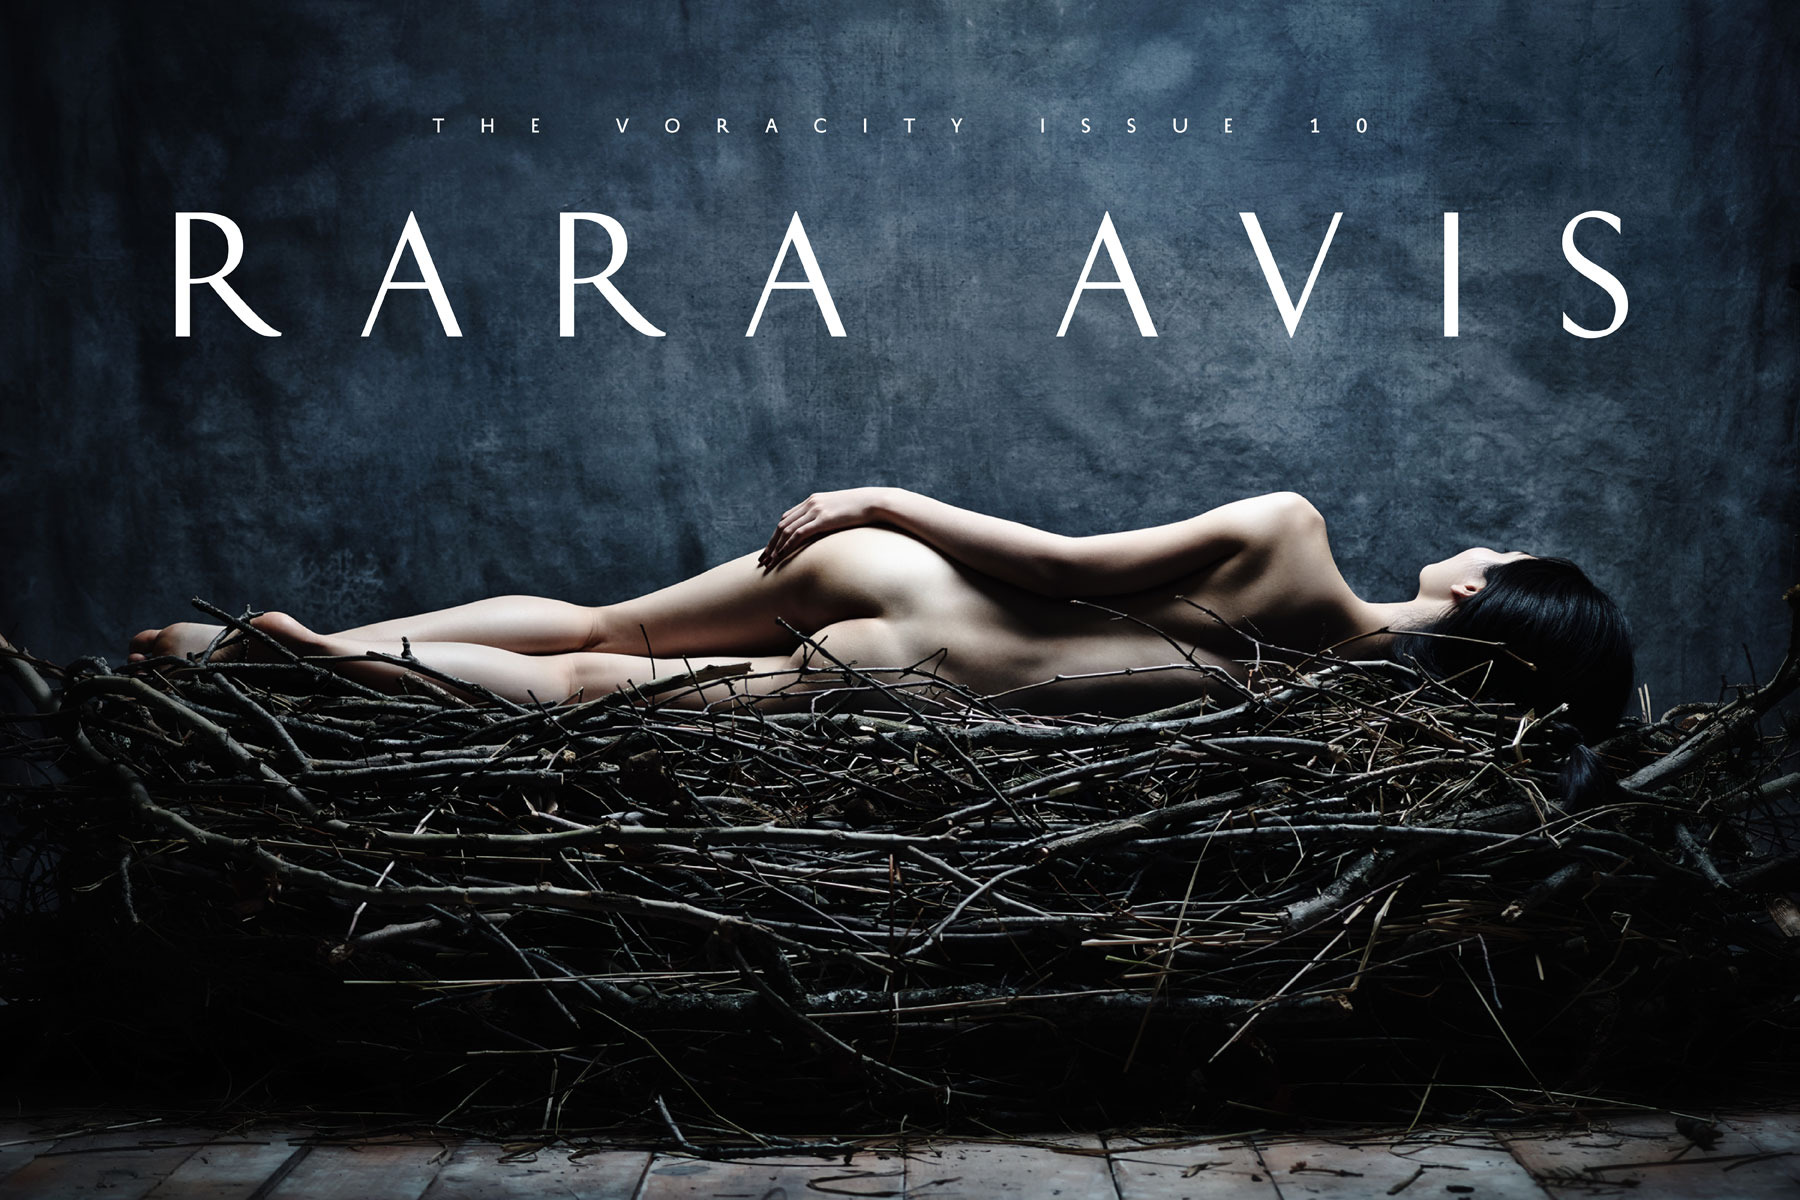 RARA AVIS - The Voracity by Anna Williams